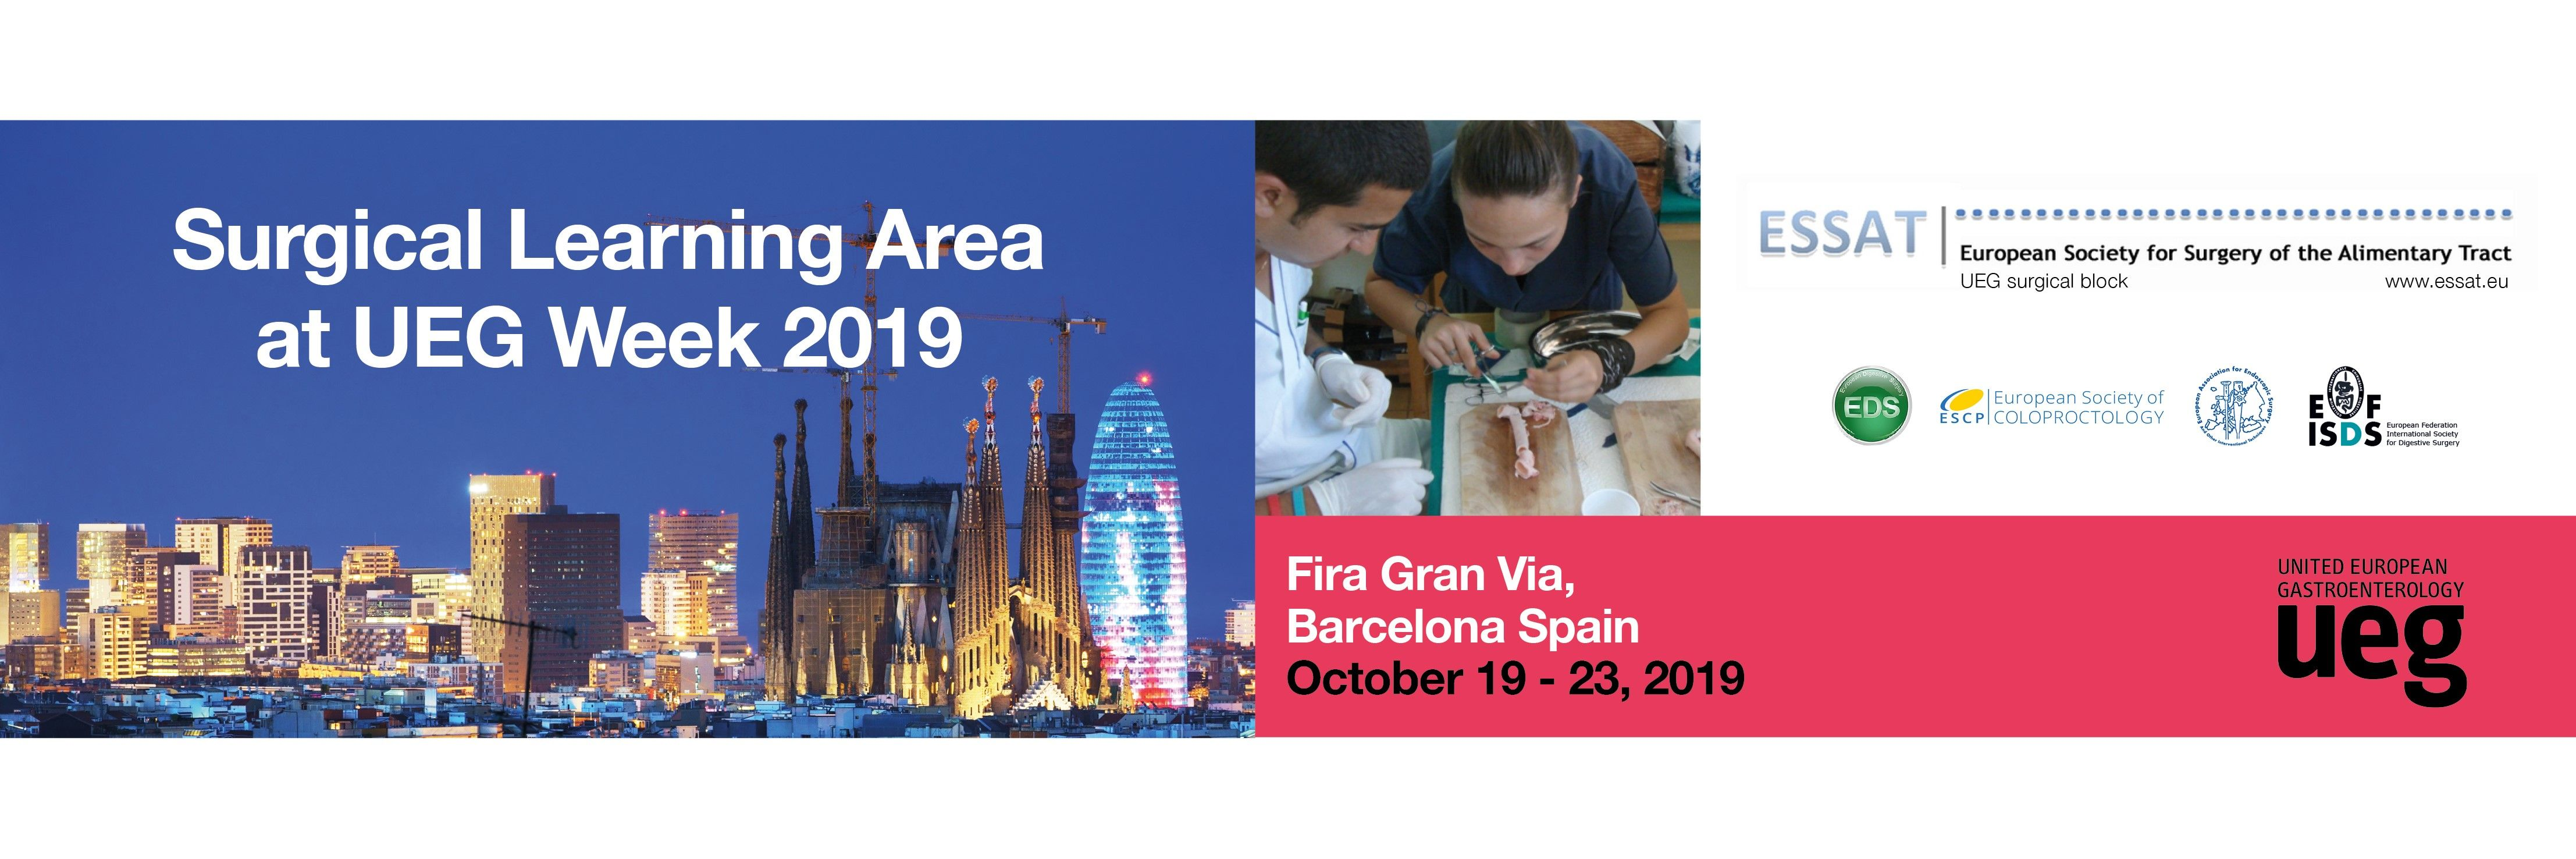 Registration is now open for the UEG Week 2019 Surgical Learning Area